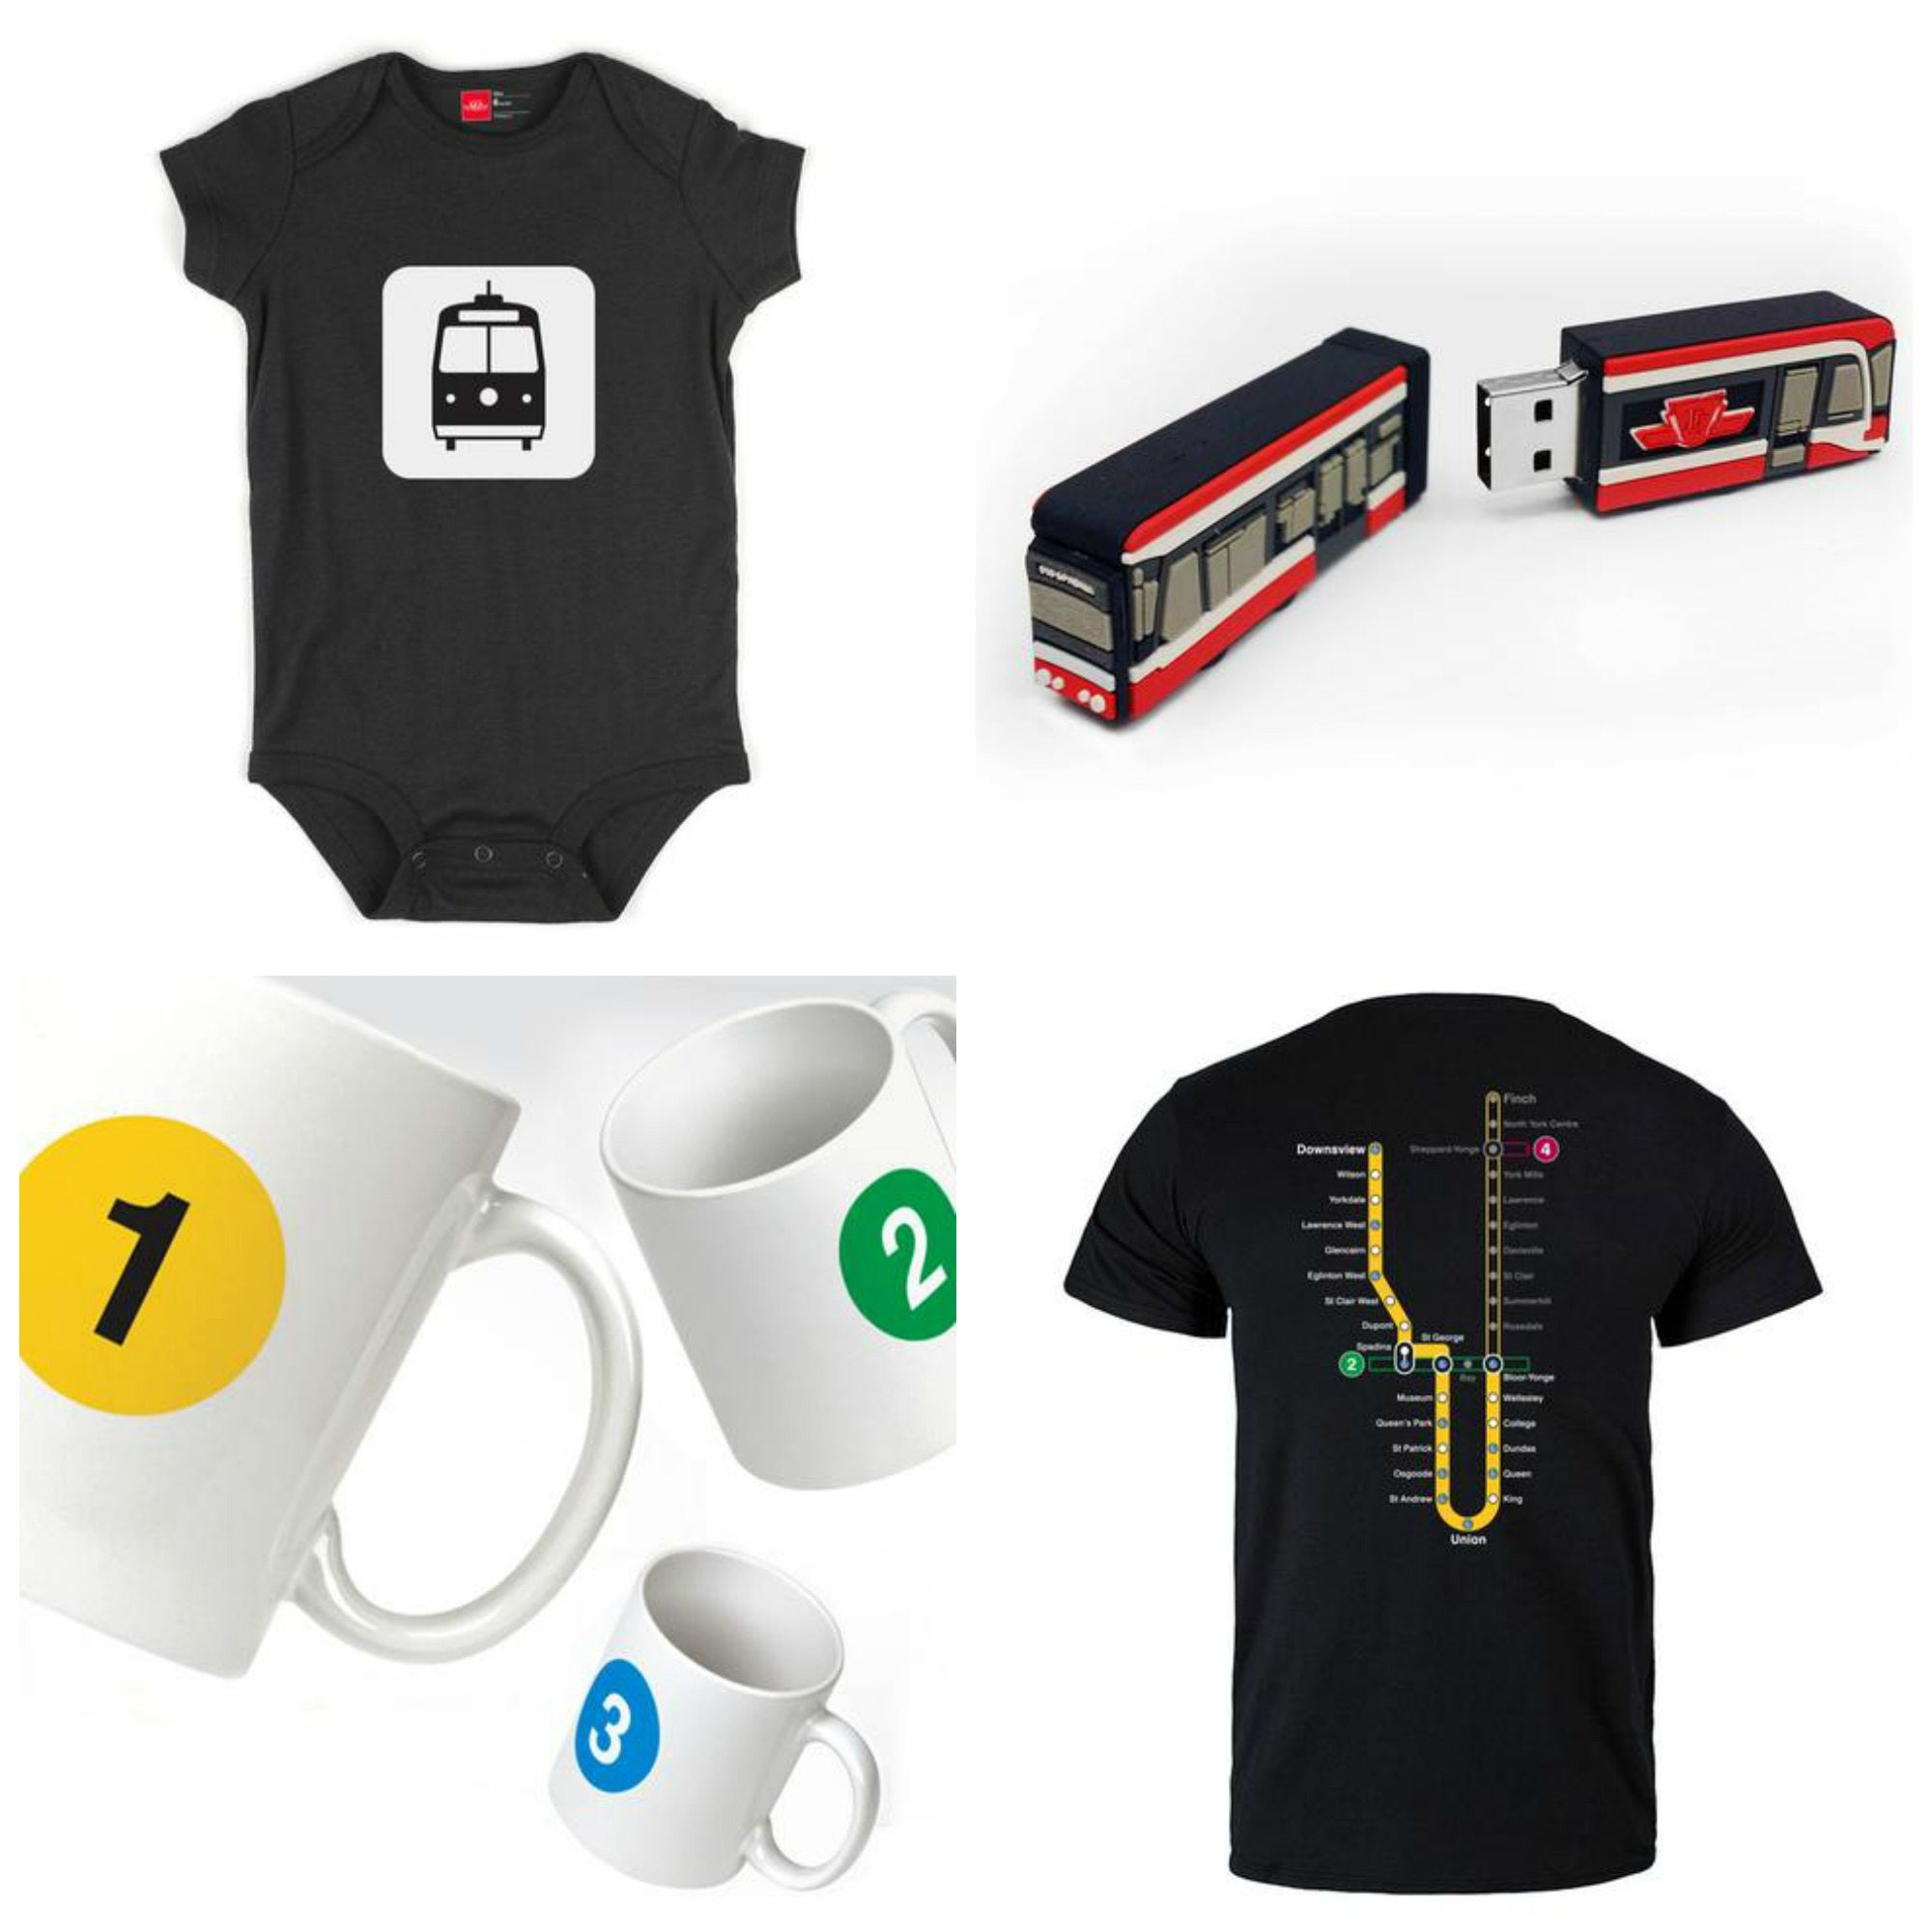 Items available in the new online TTC store: A baby picto onezie ($14), a streetcar USB flash drive (coming soon, $25), mugs ($10 each), and t-shirts ($29).